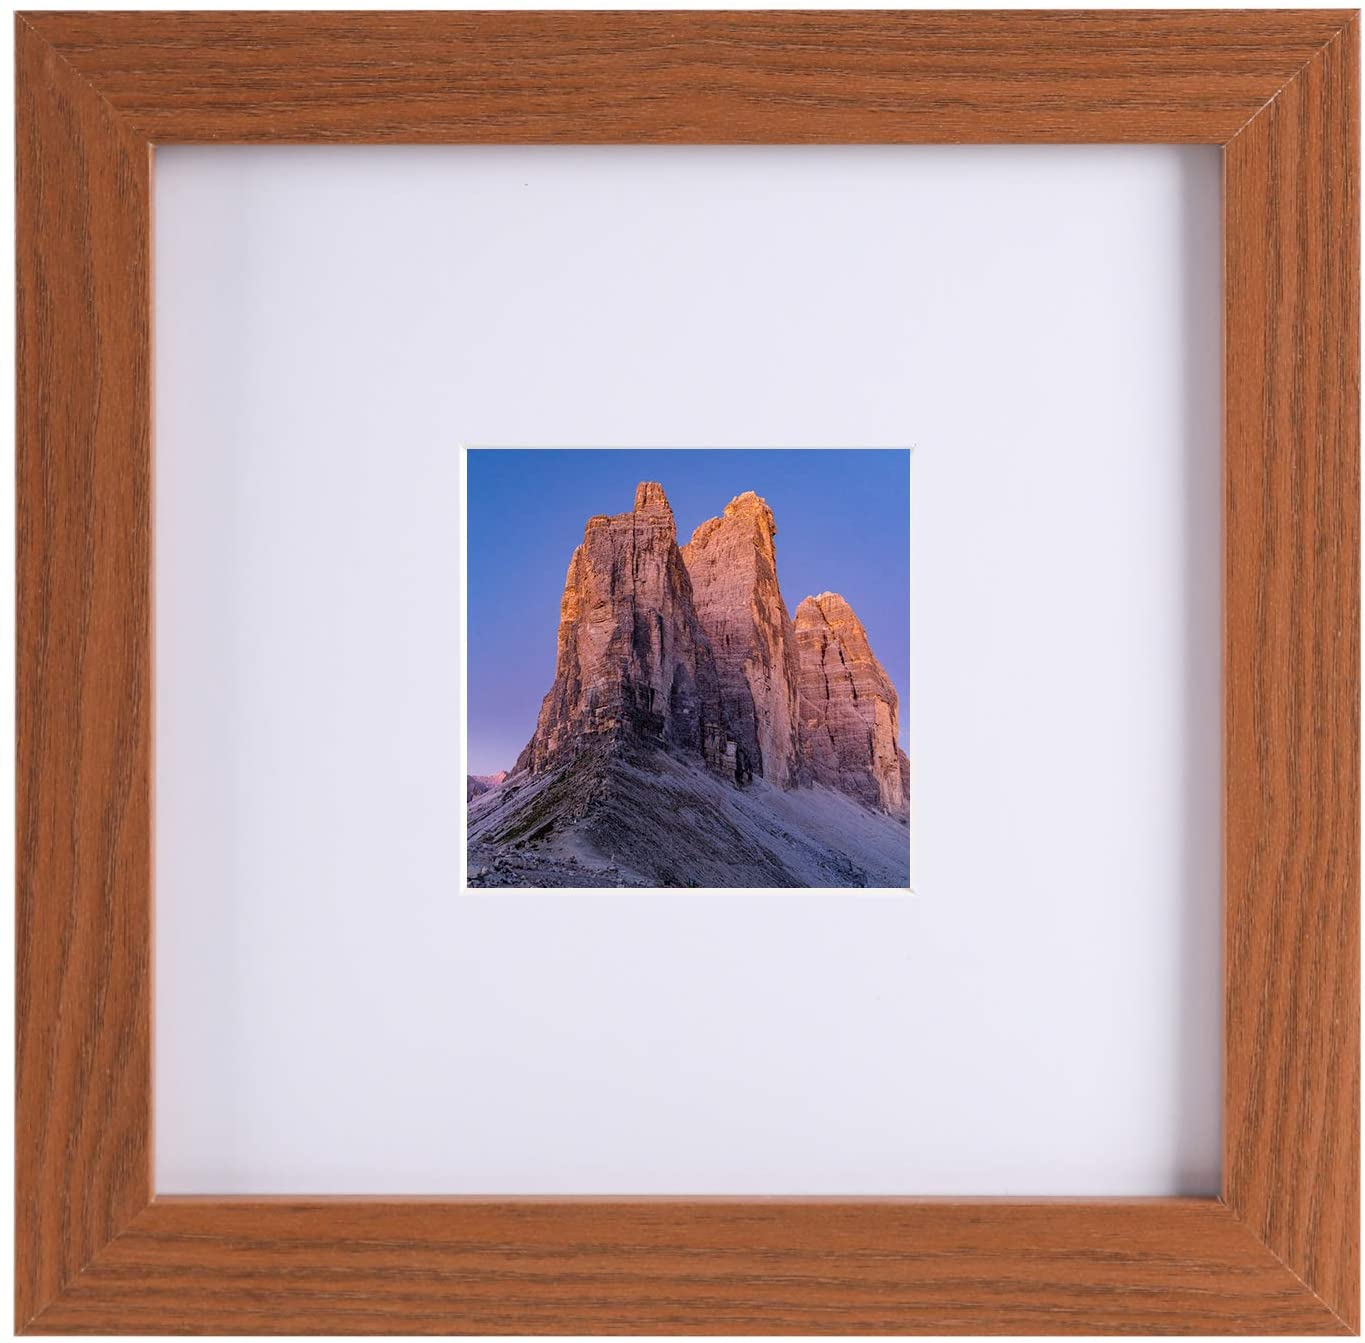 8x8 Picture Frame Display 3.5x3.5 Picture with Mat, 8x8 Without Mat, Ready to Hang or Stand, Wall and Tabletop Frame (Brown, 8x8)